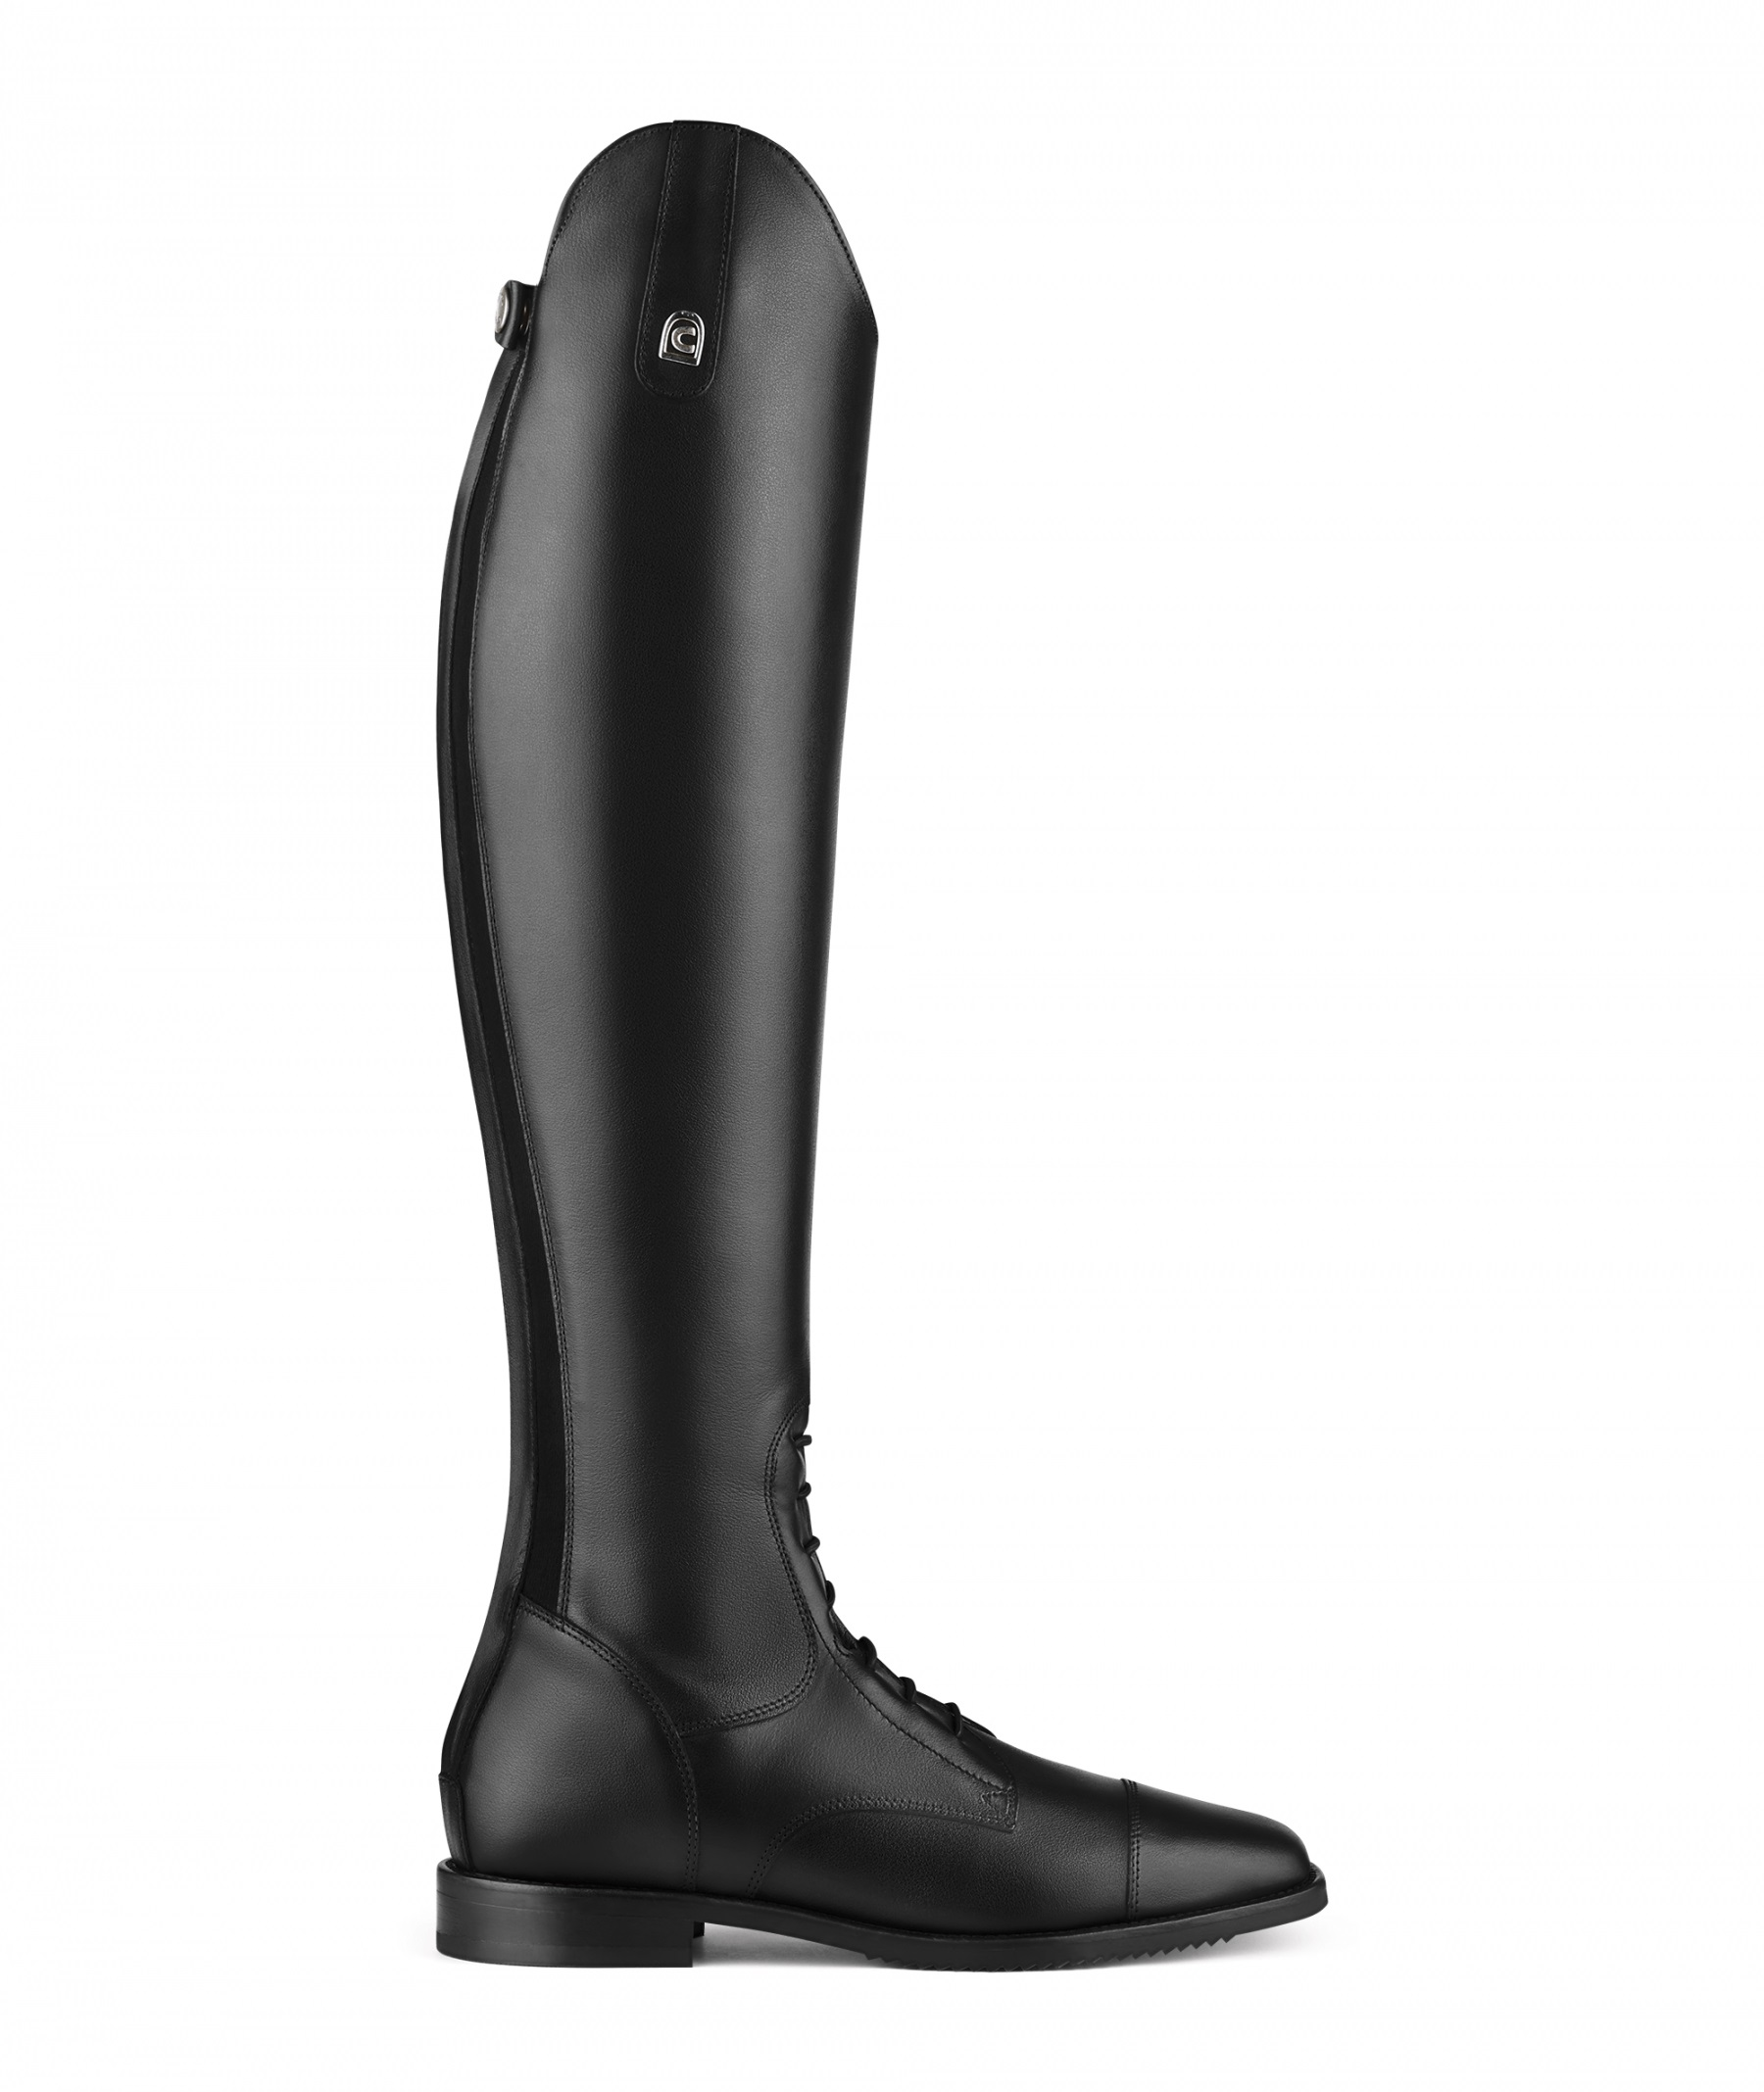 Jumping Cavallo Show Jump Boots Linus Riding sCBthQdrx